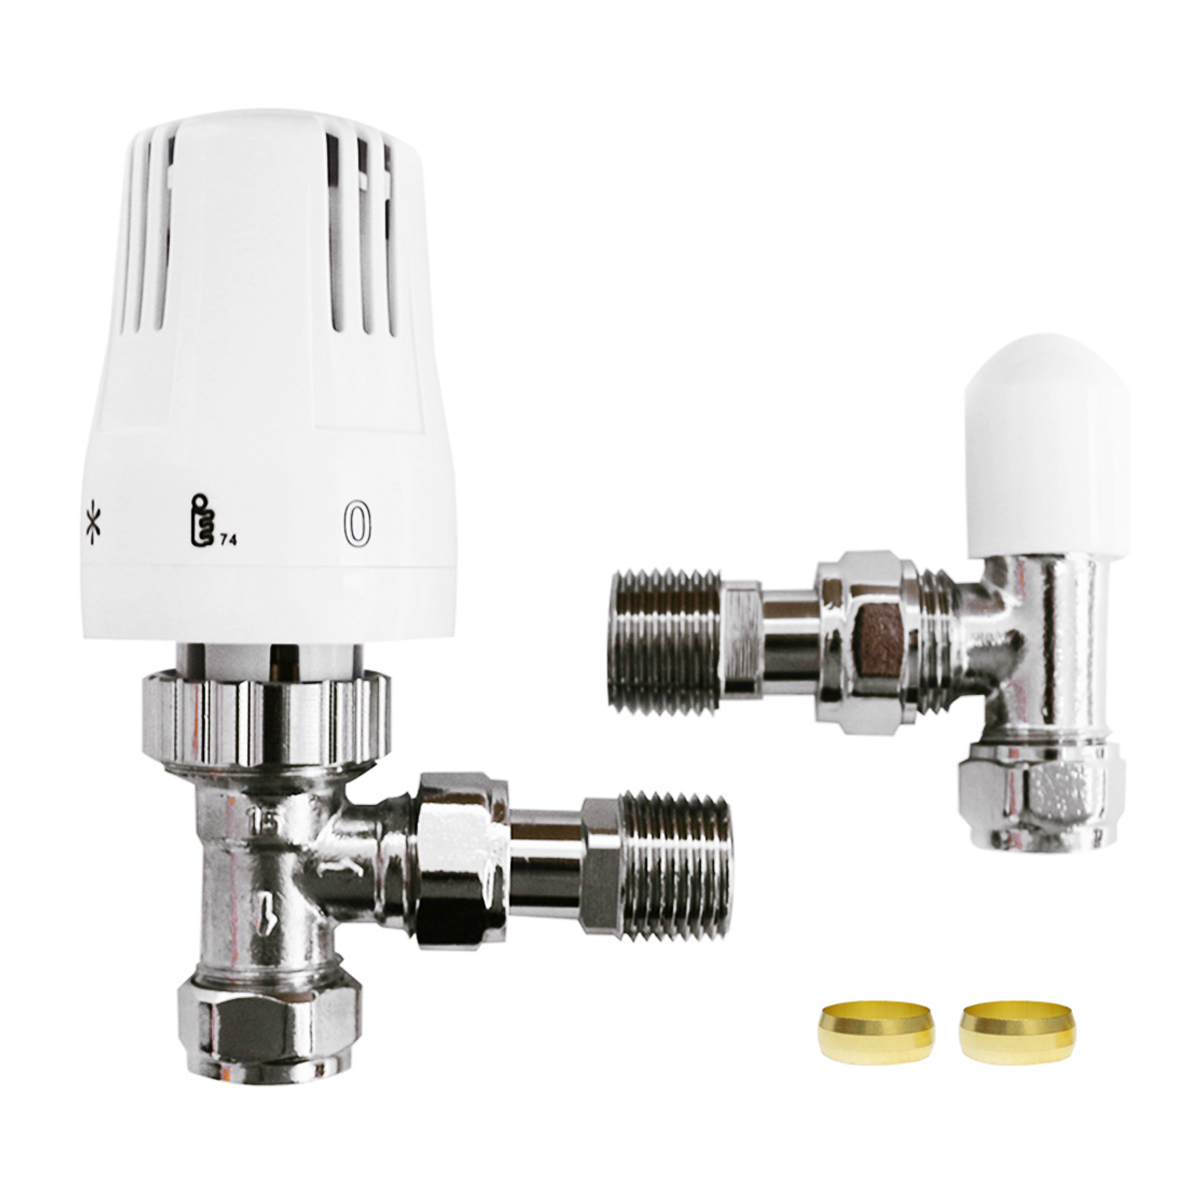 Suntask_TRV_030C_Thermostatic_Radiator_Valve_Set_Angled _Connection_Dublin_12.jpg